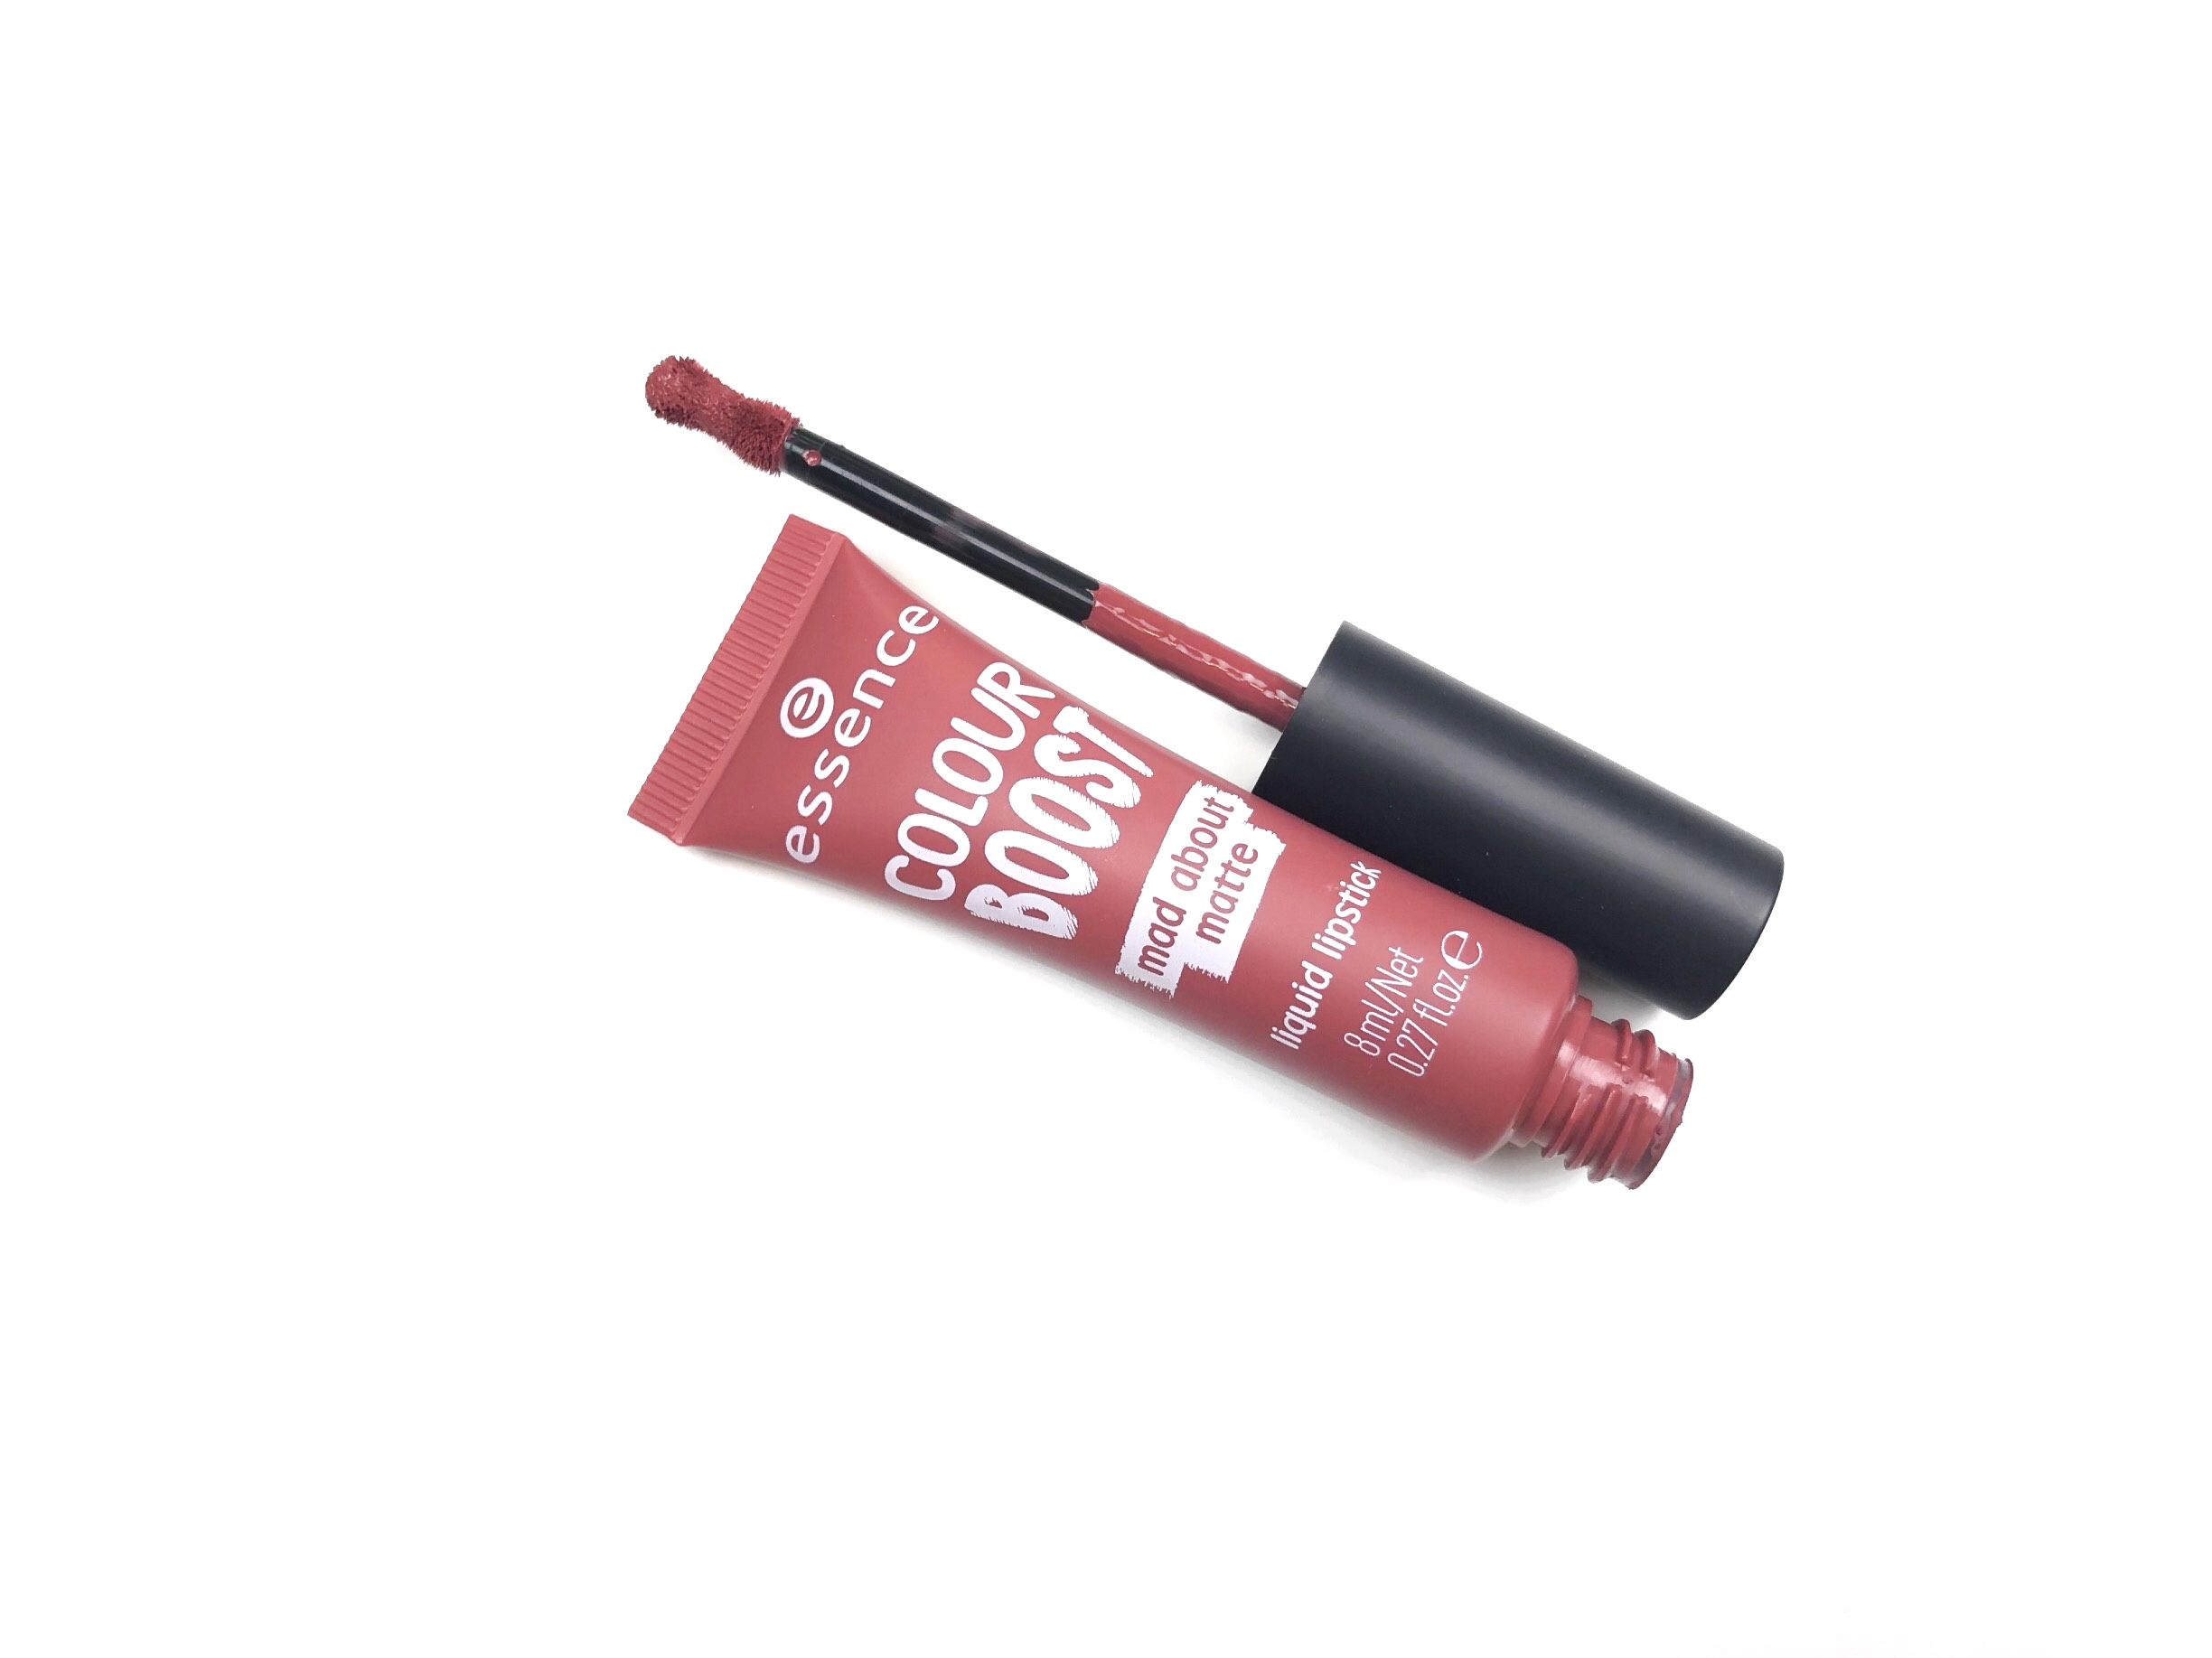 Essence Colour Boost Mad About Matte Liquid Lipstick in 04 Mad Matters